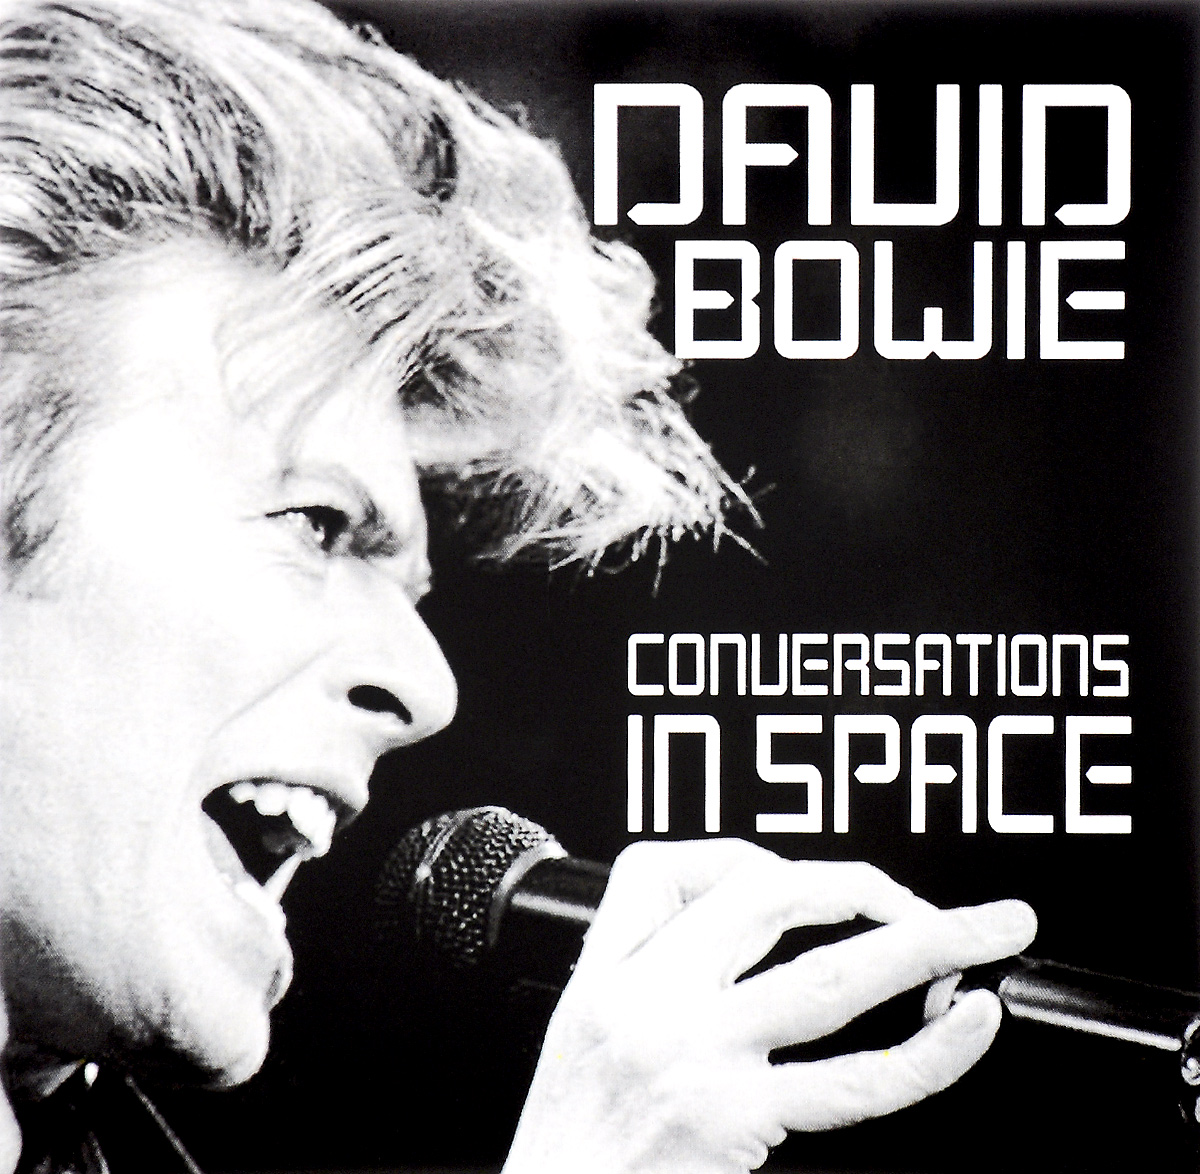 David Bowie. Conversations In Space